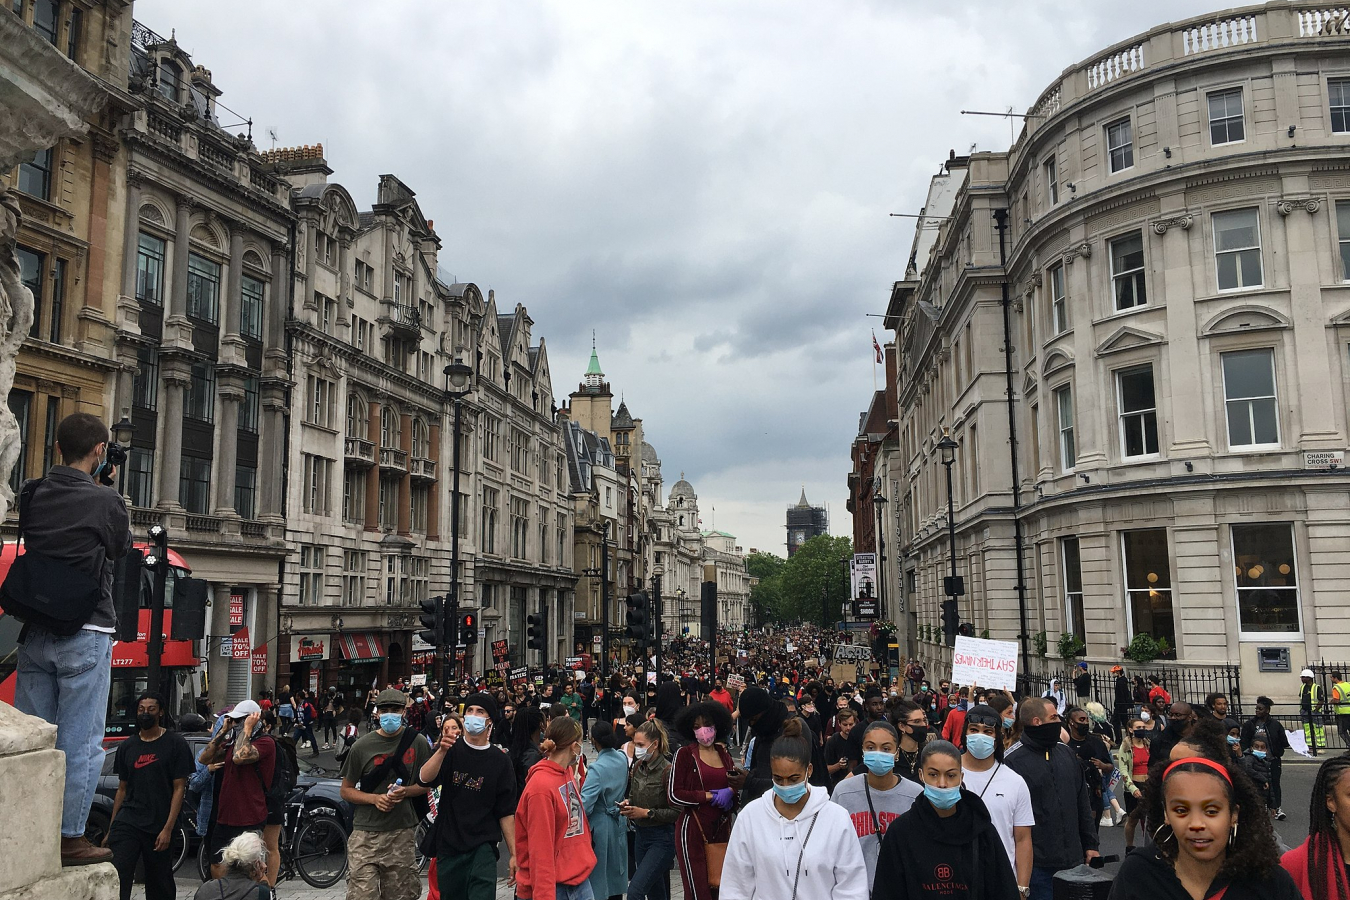 Black Lives Matter peaceful protest on 3 June 2020 end of March from Hyde Park to Trafalgar Square.